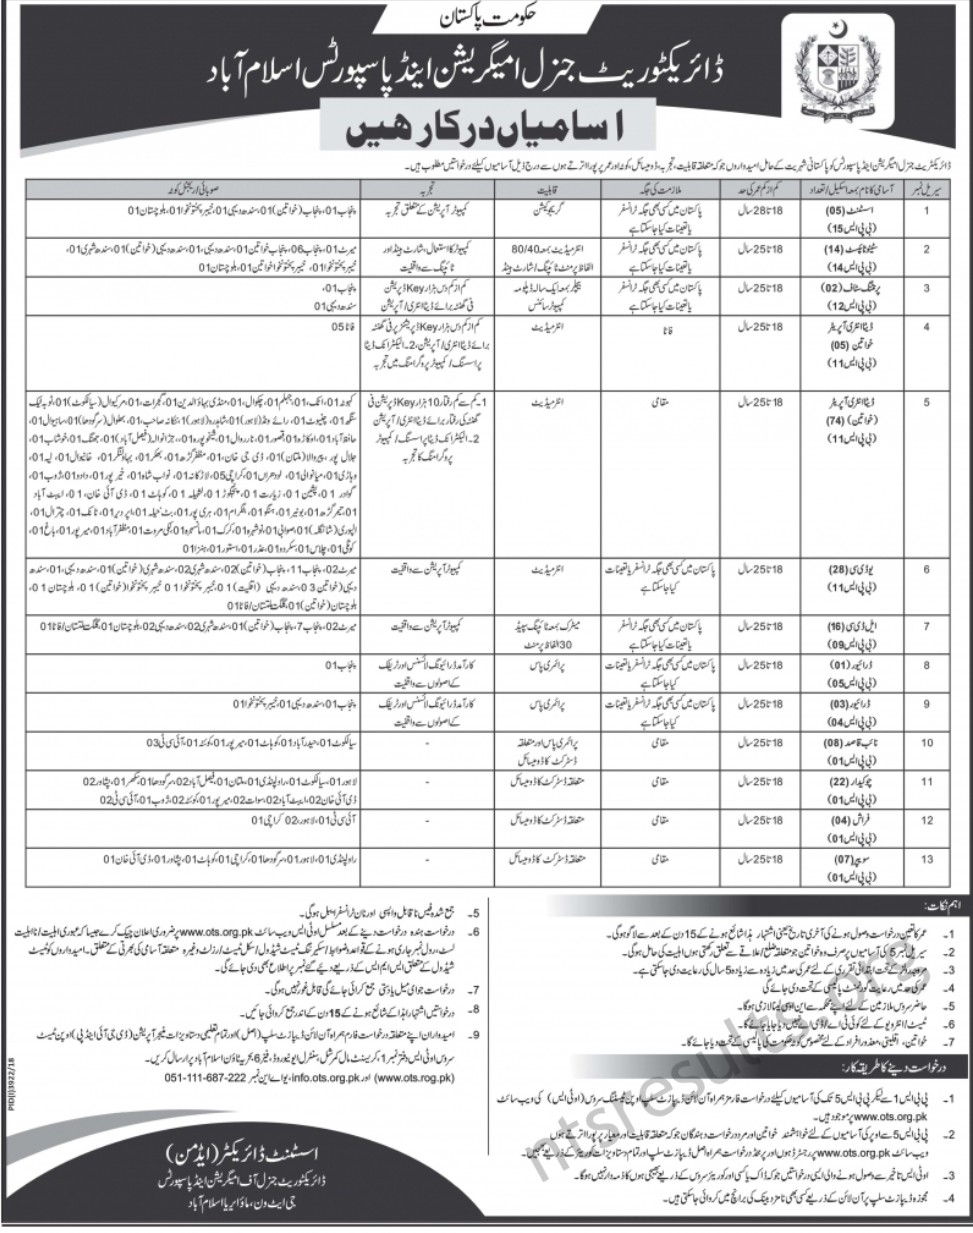 Directorate General Of Immigration Passports DGIP Islamabad Jobs OTS Test Roll No Slip